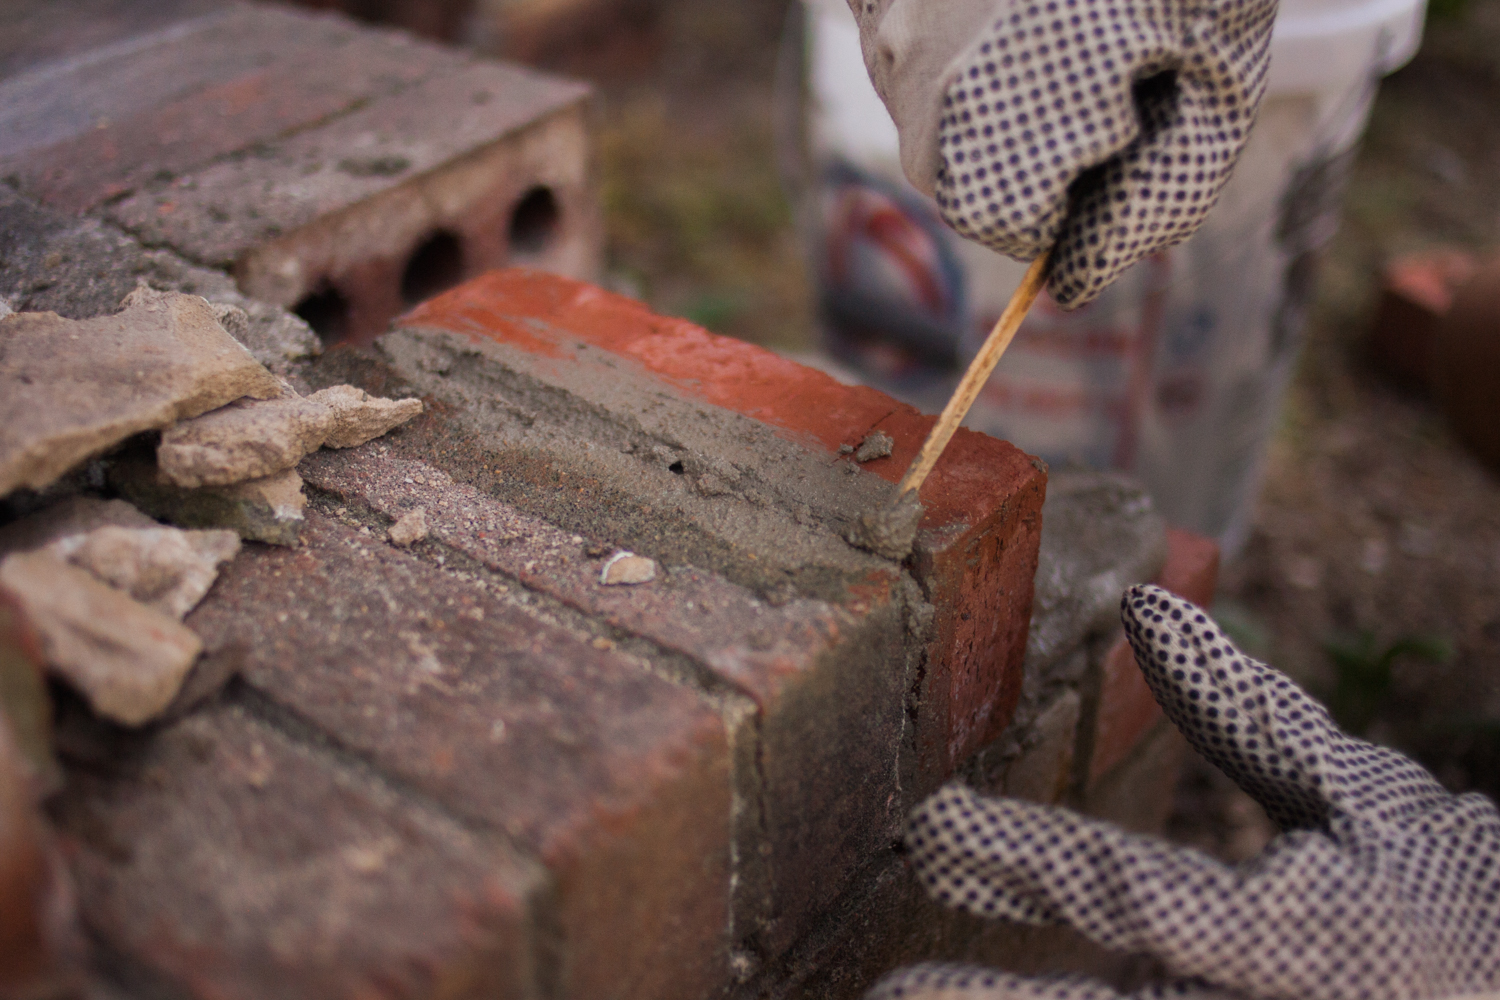 smoothing out excess mortar from bricks